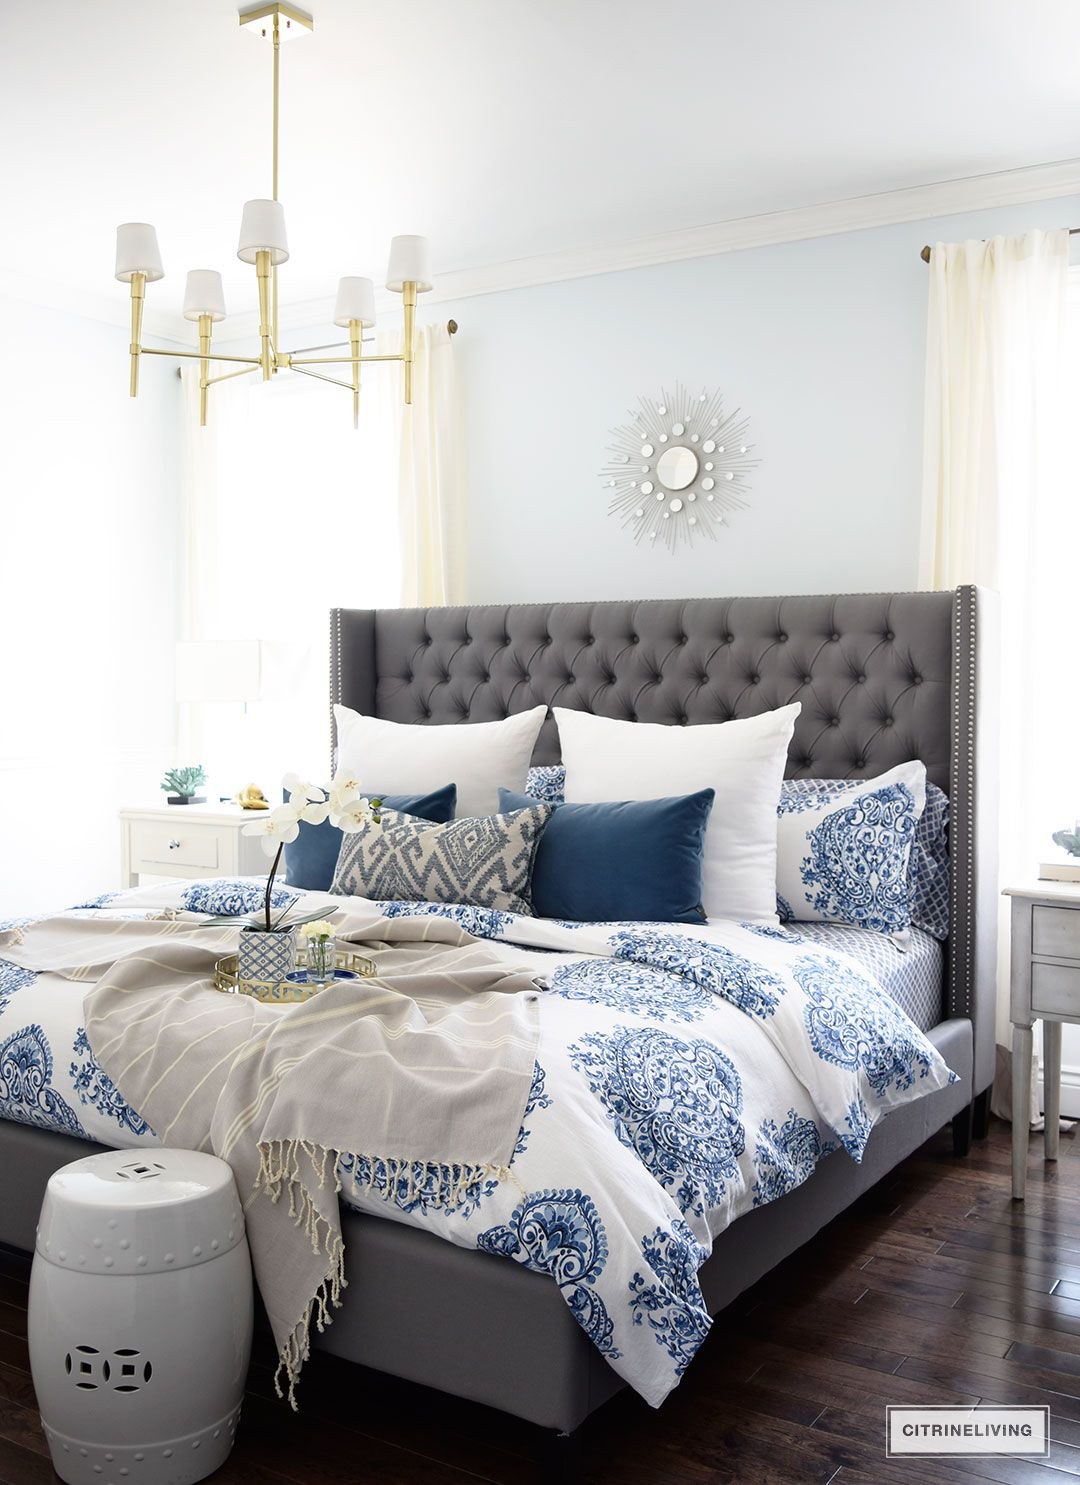 Blue and white bedroom - Gorgeous Blue And White Bedroom Featuring Blue And White Bedding Paired With Global Inspired Textiles